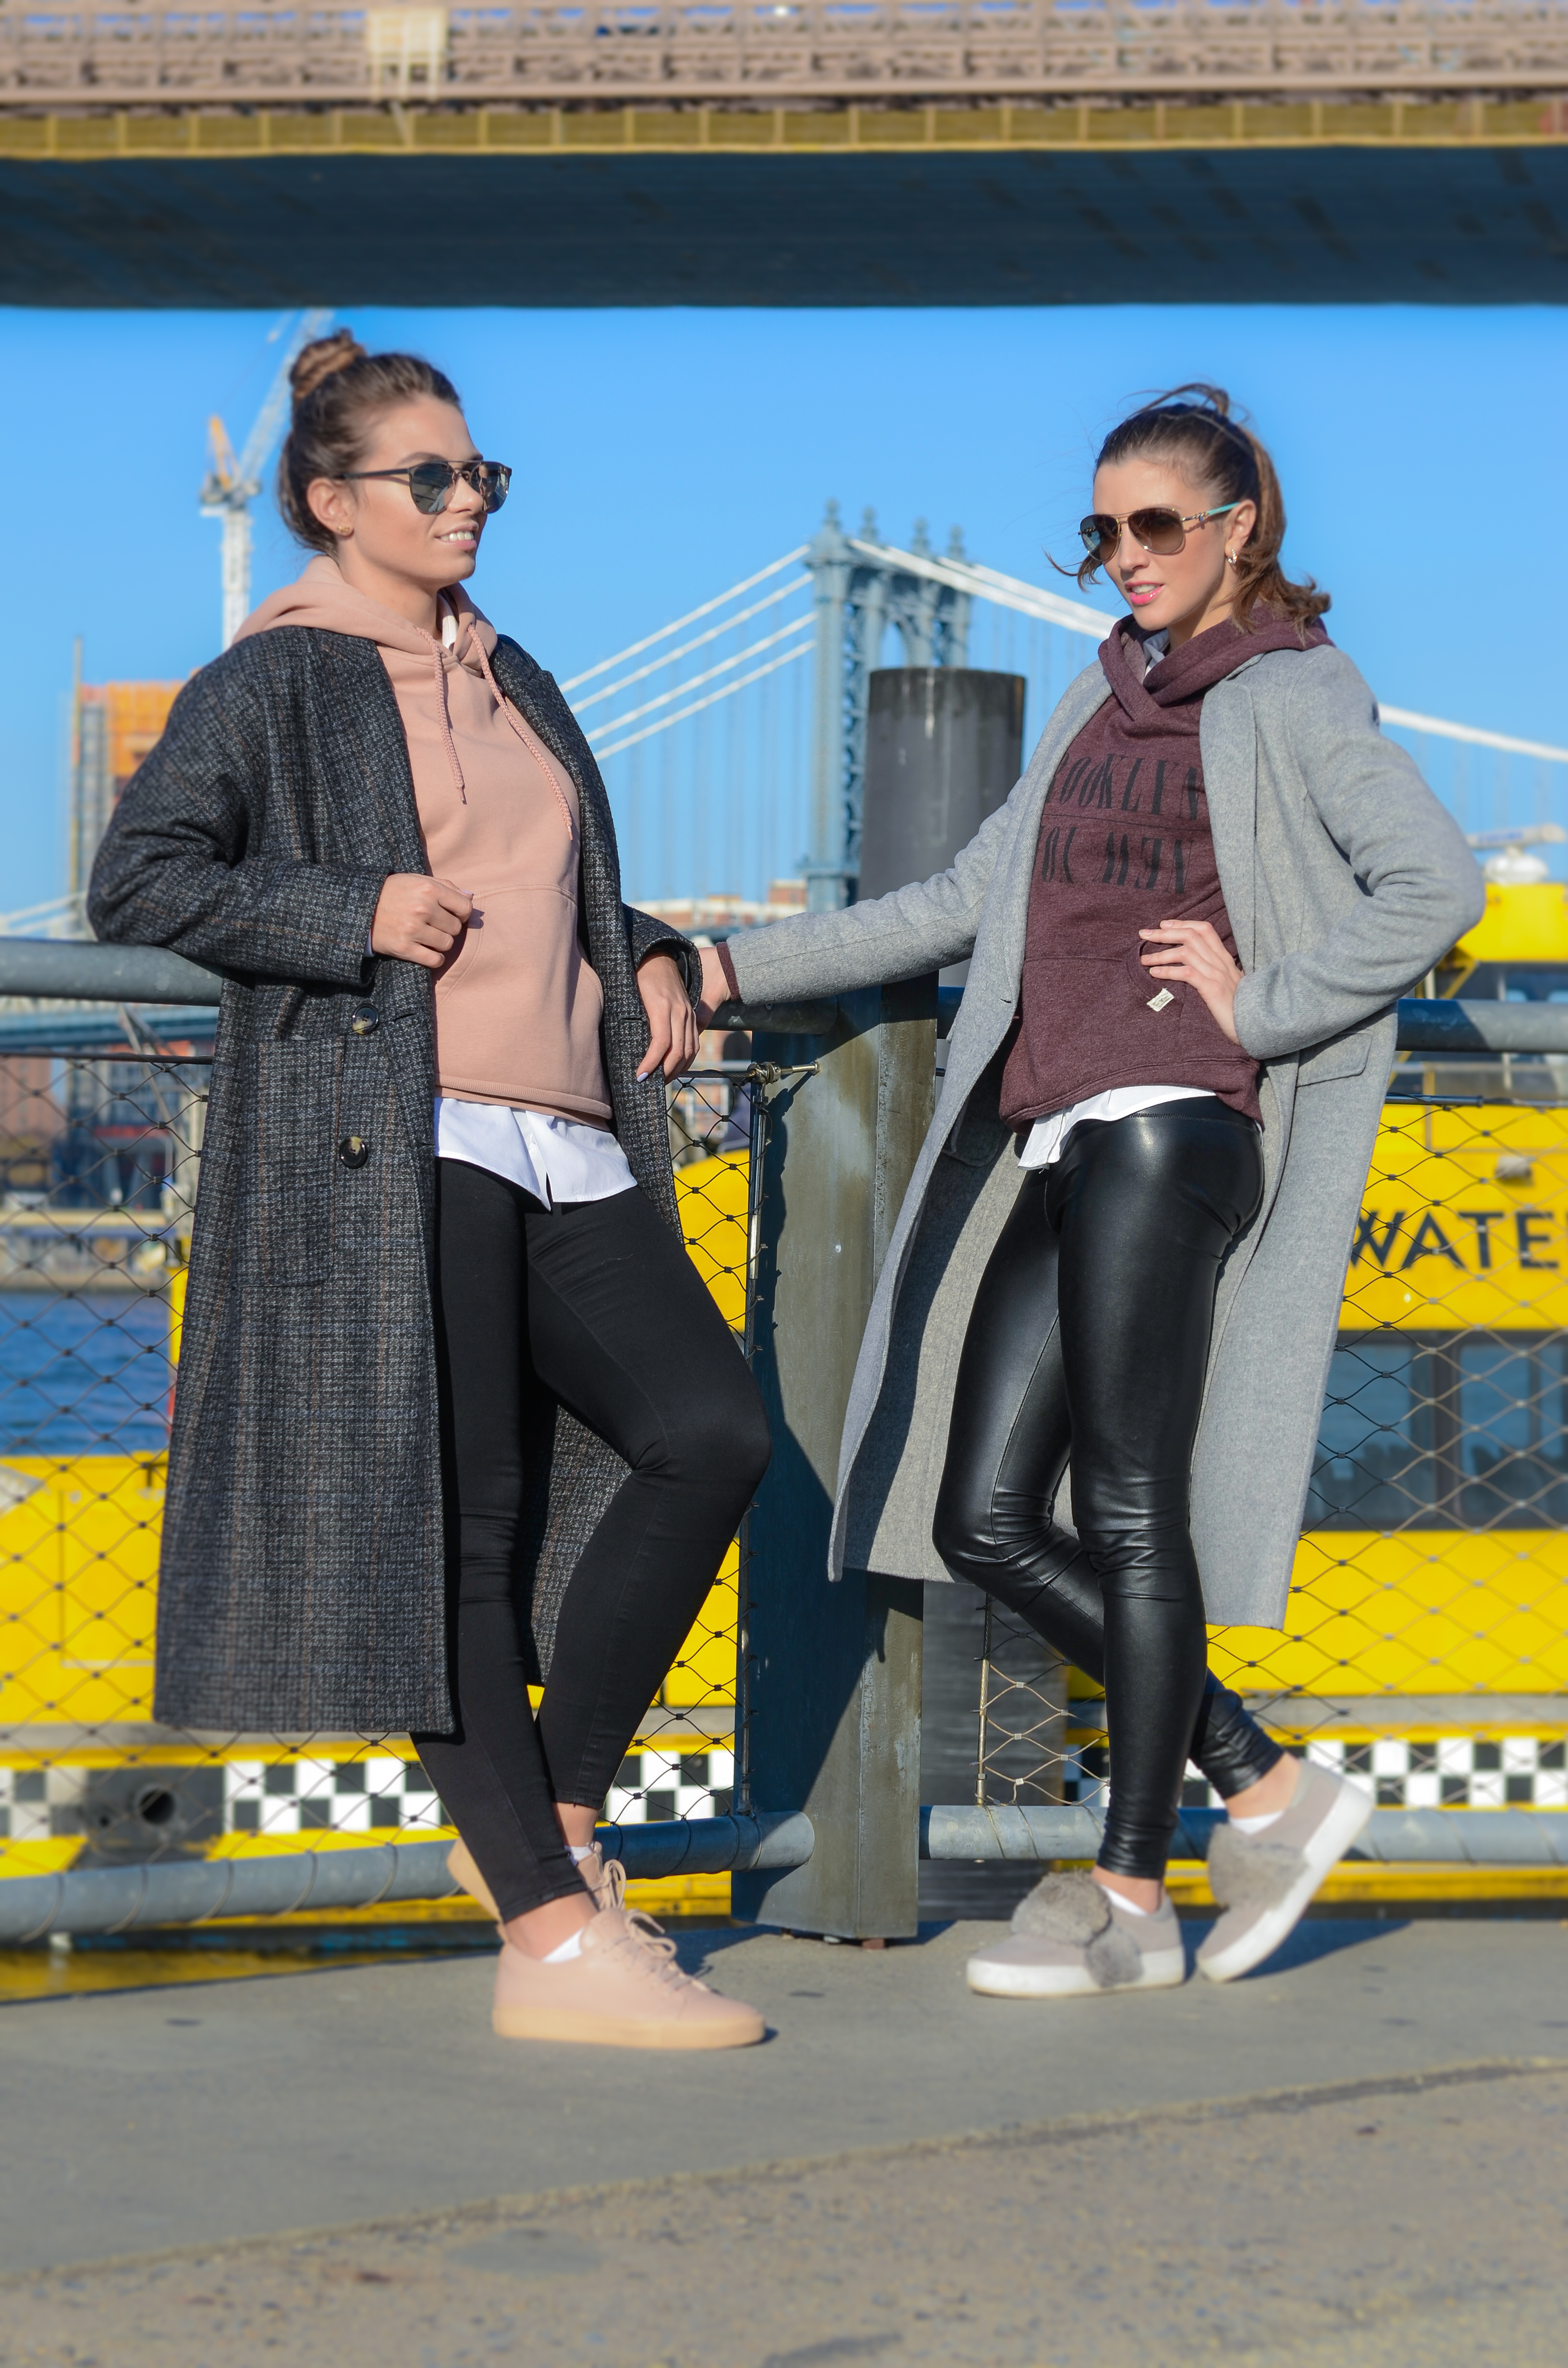 look-of-the-day-outfit-nyc-streetstyle-allbuenothings-blogger-new-york-fashionable-stylish-hoodie-layers